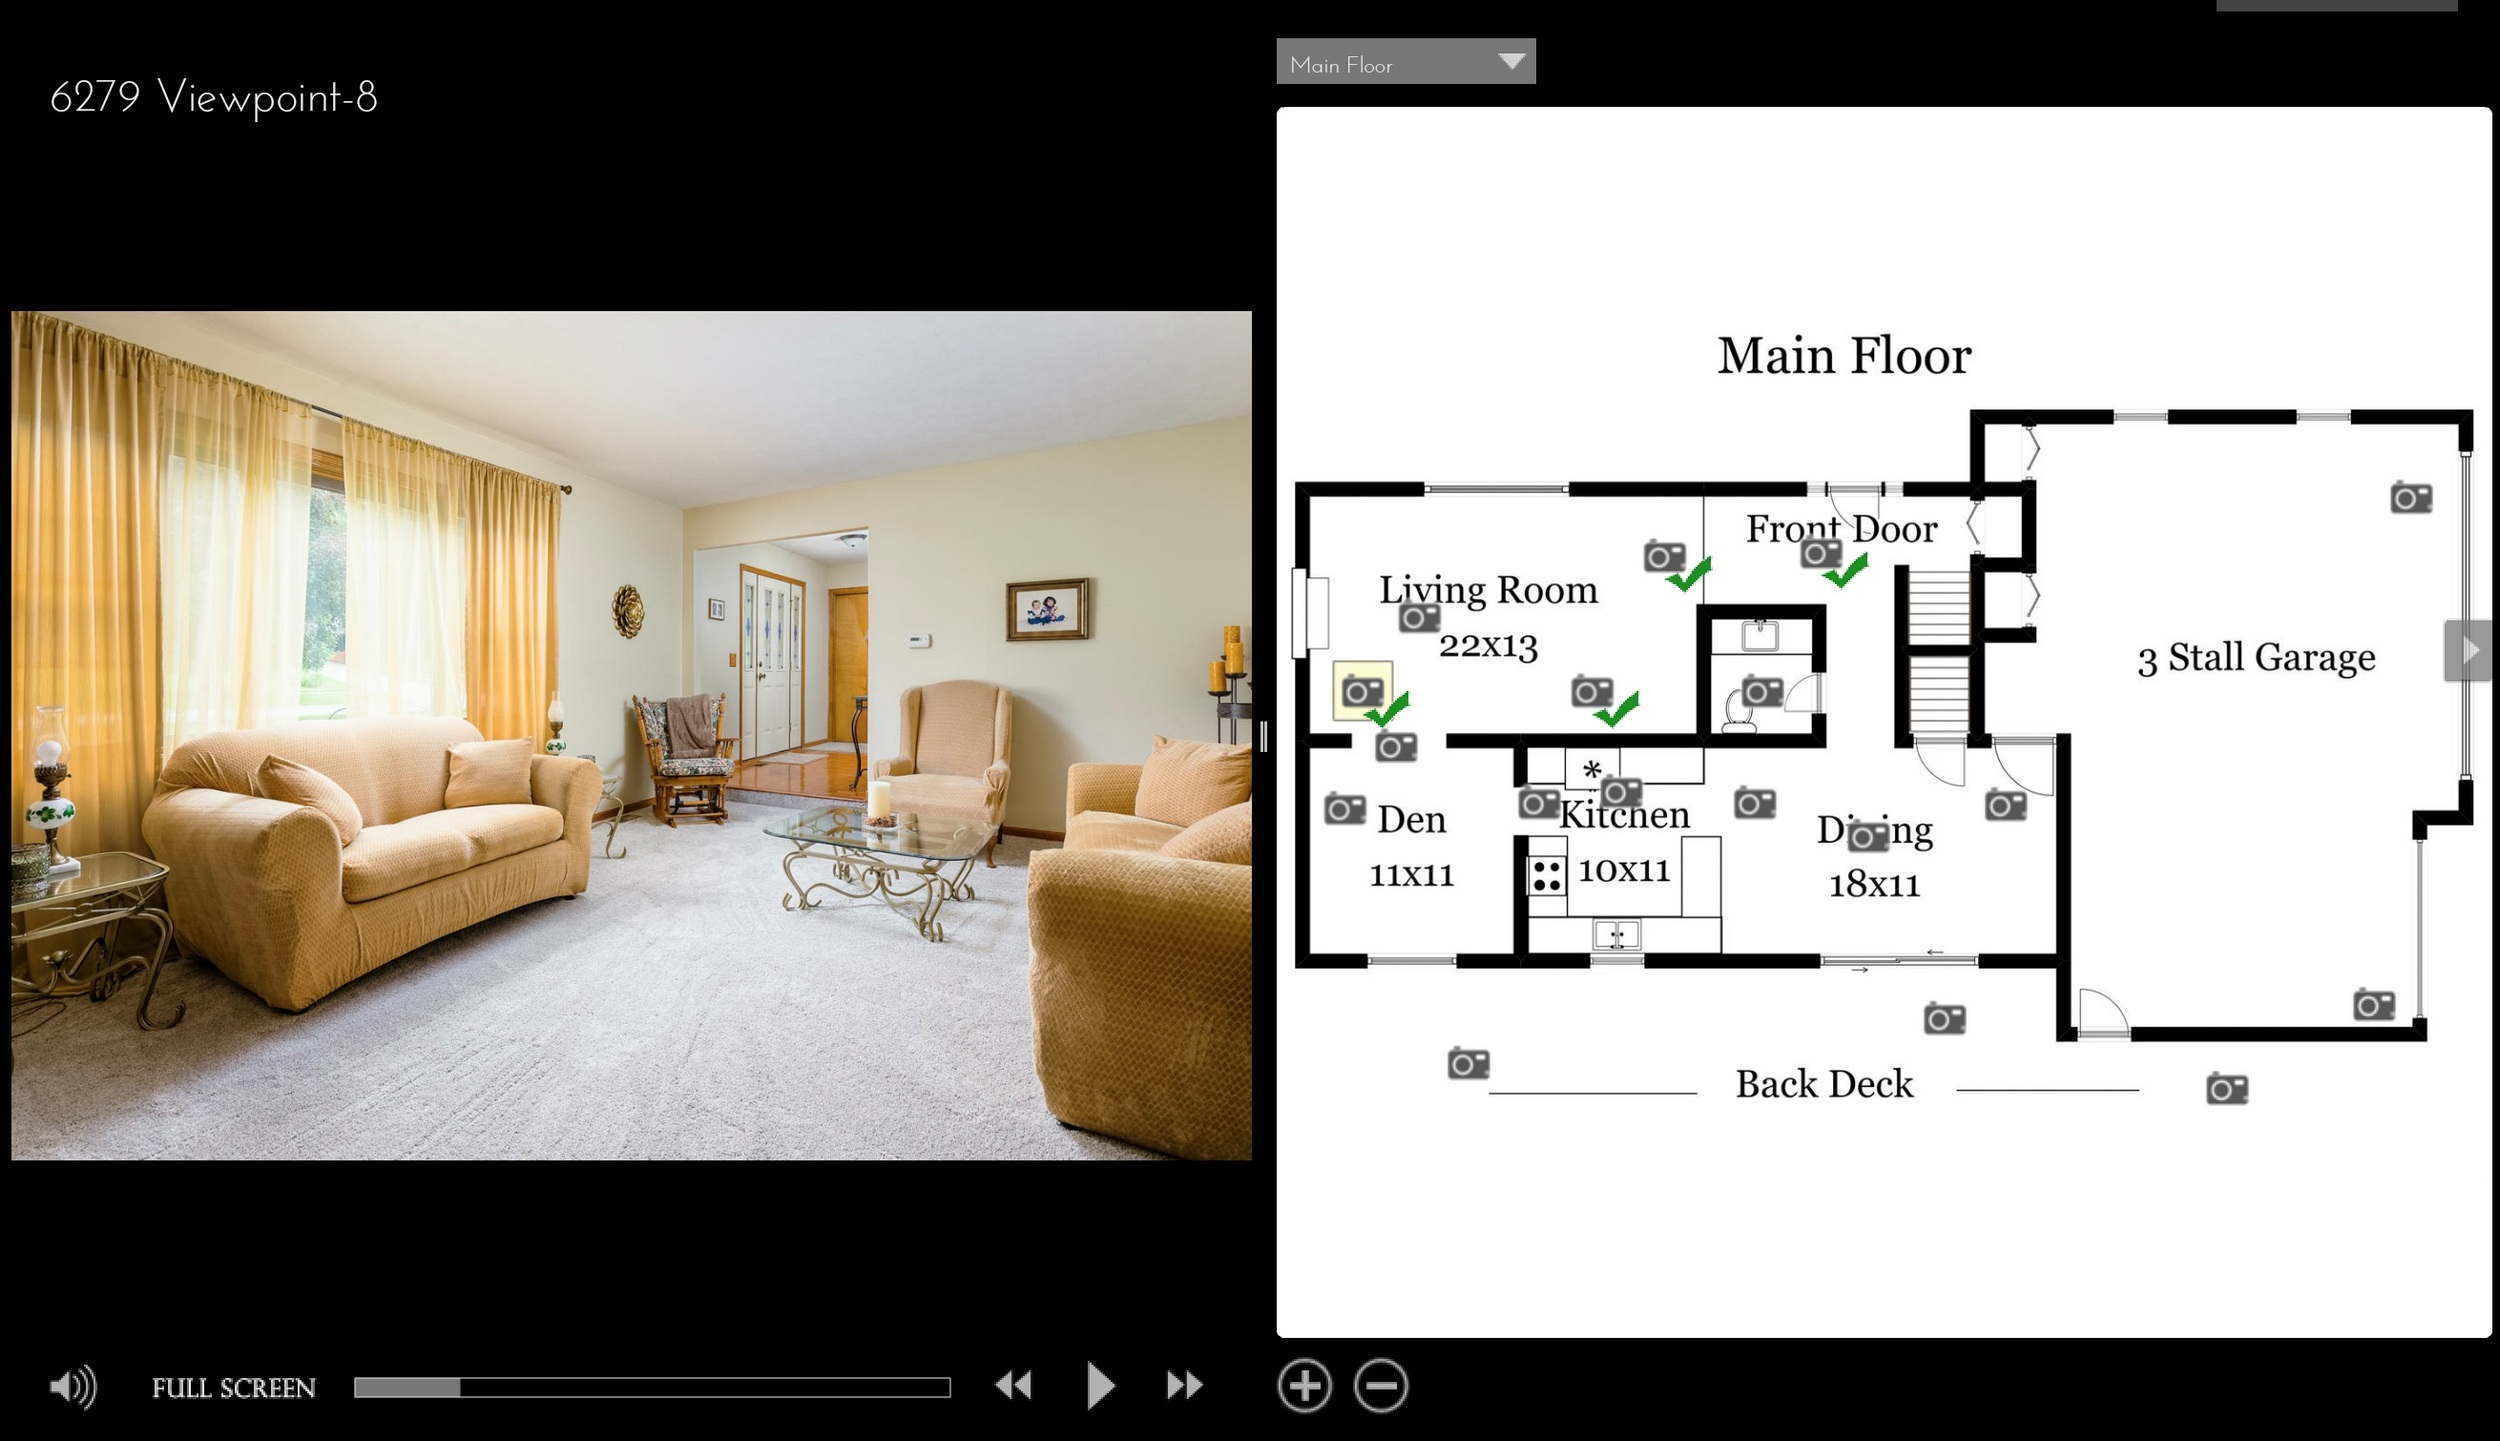 Click to view the interactive Floorplan for 6279 Viewpoint Dr NE.